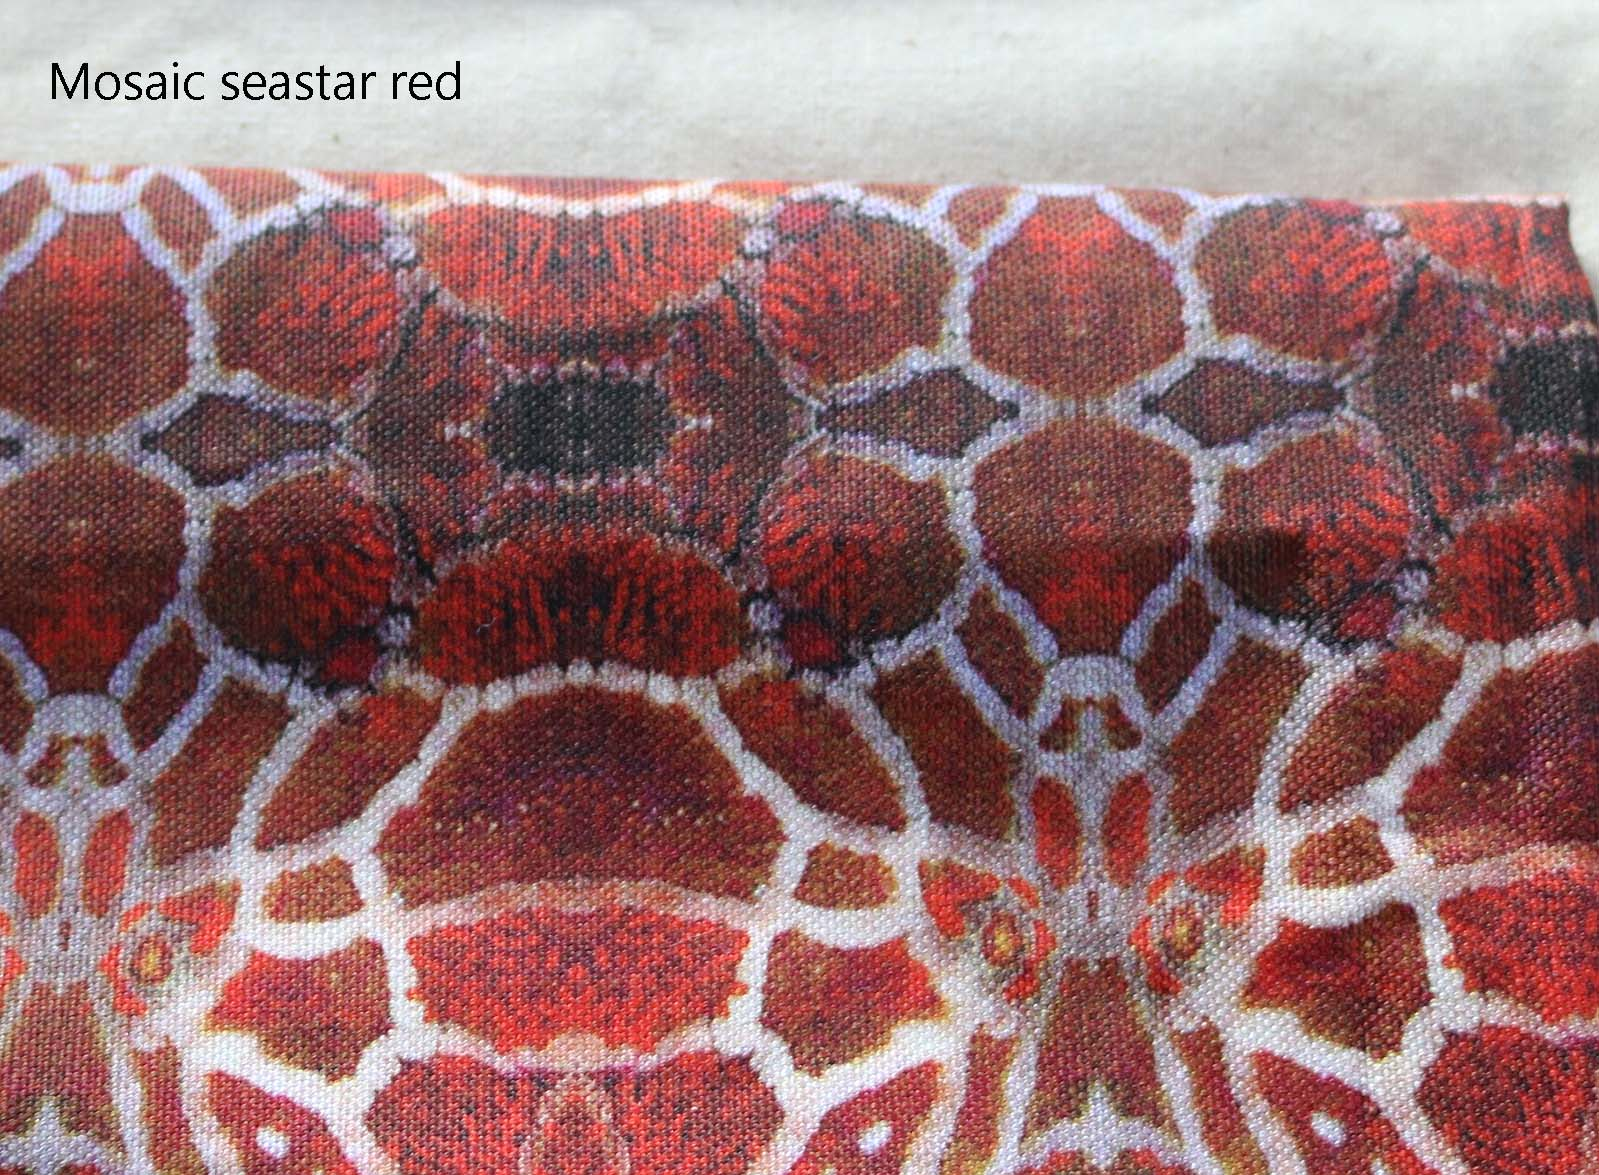 fabric mosaic red.jpg